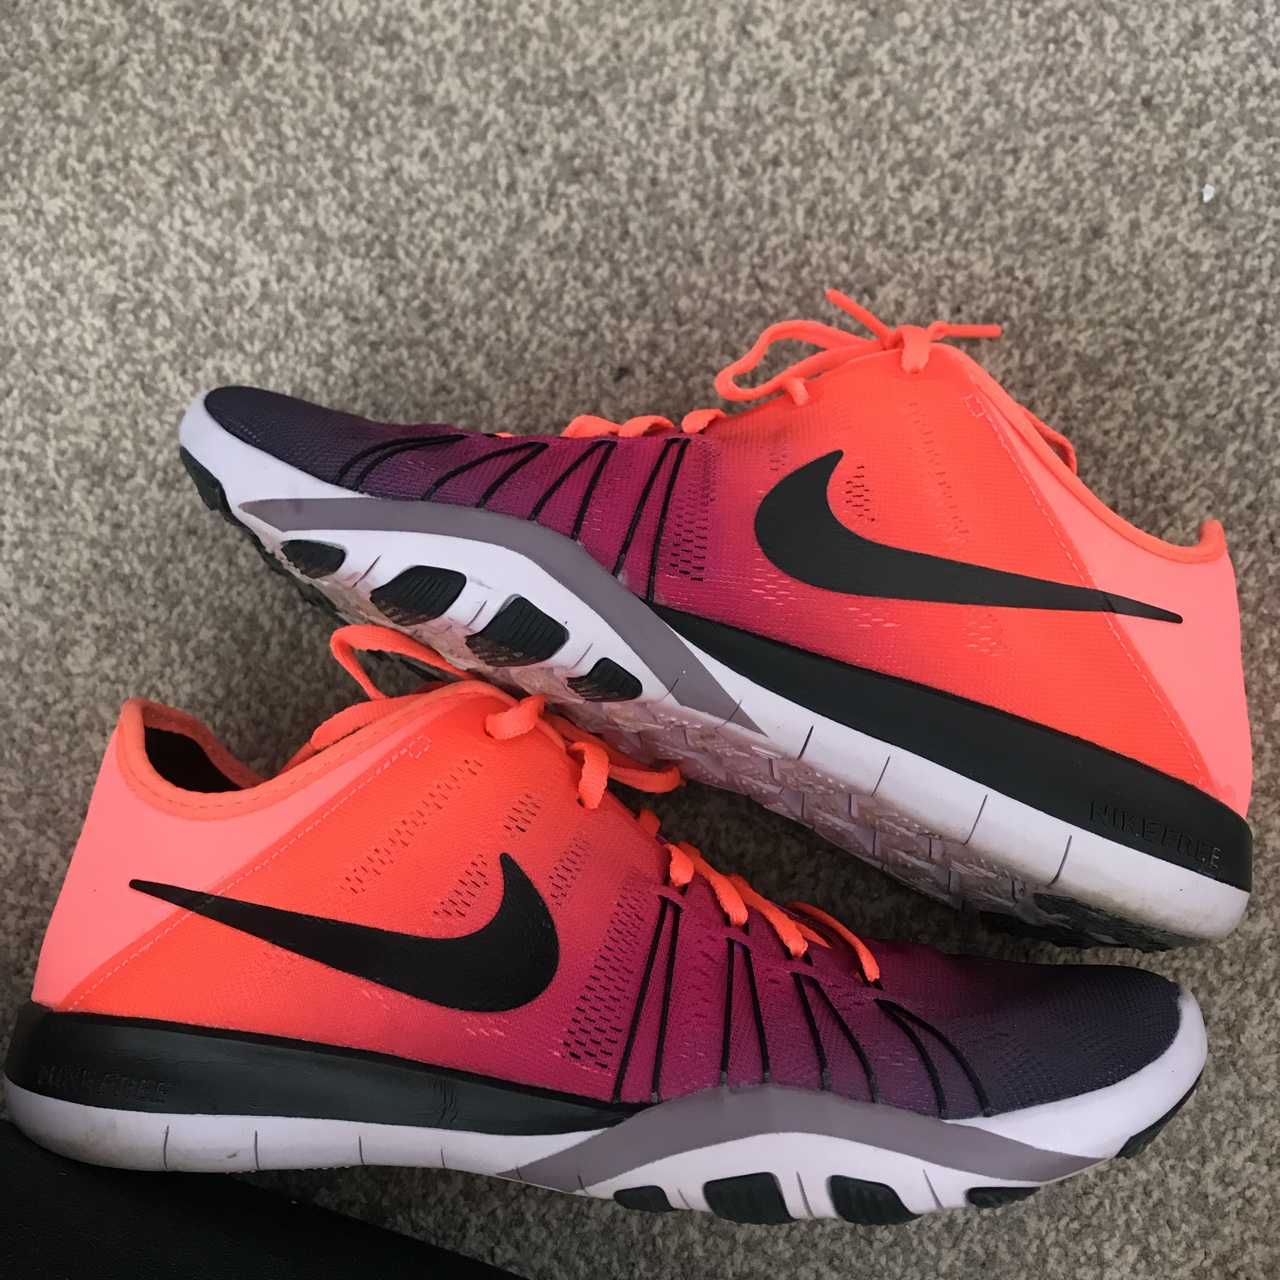 Nike free TR6 trainers Worn once, only reason for Depop